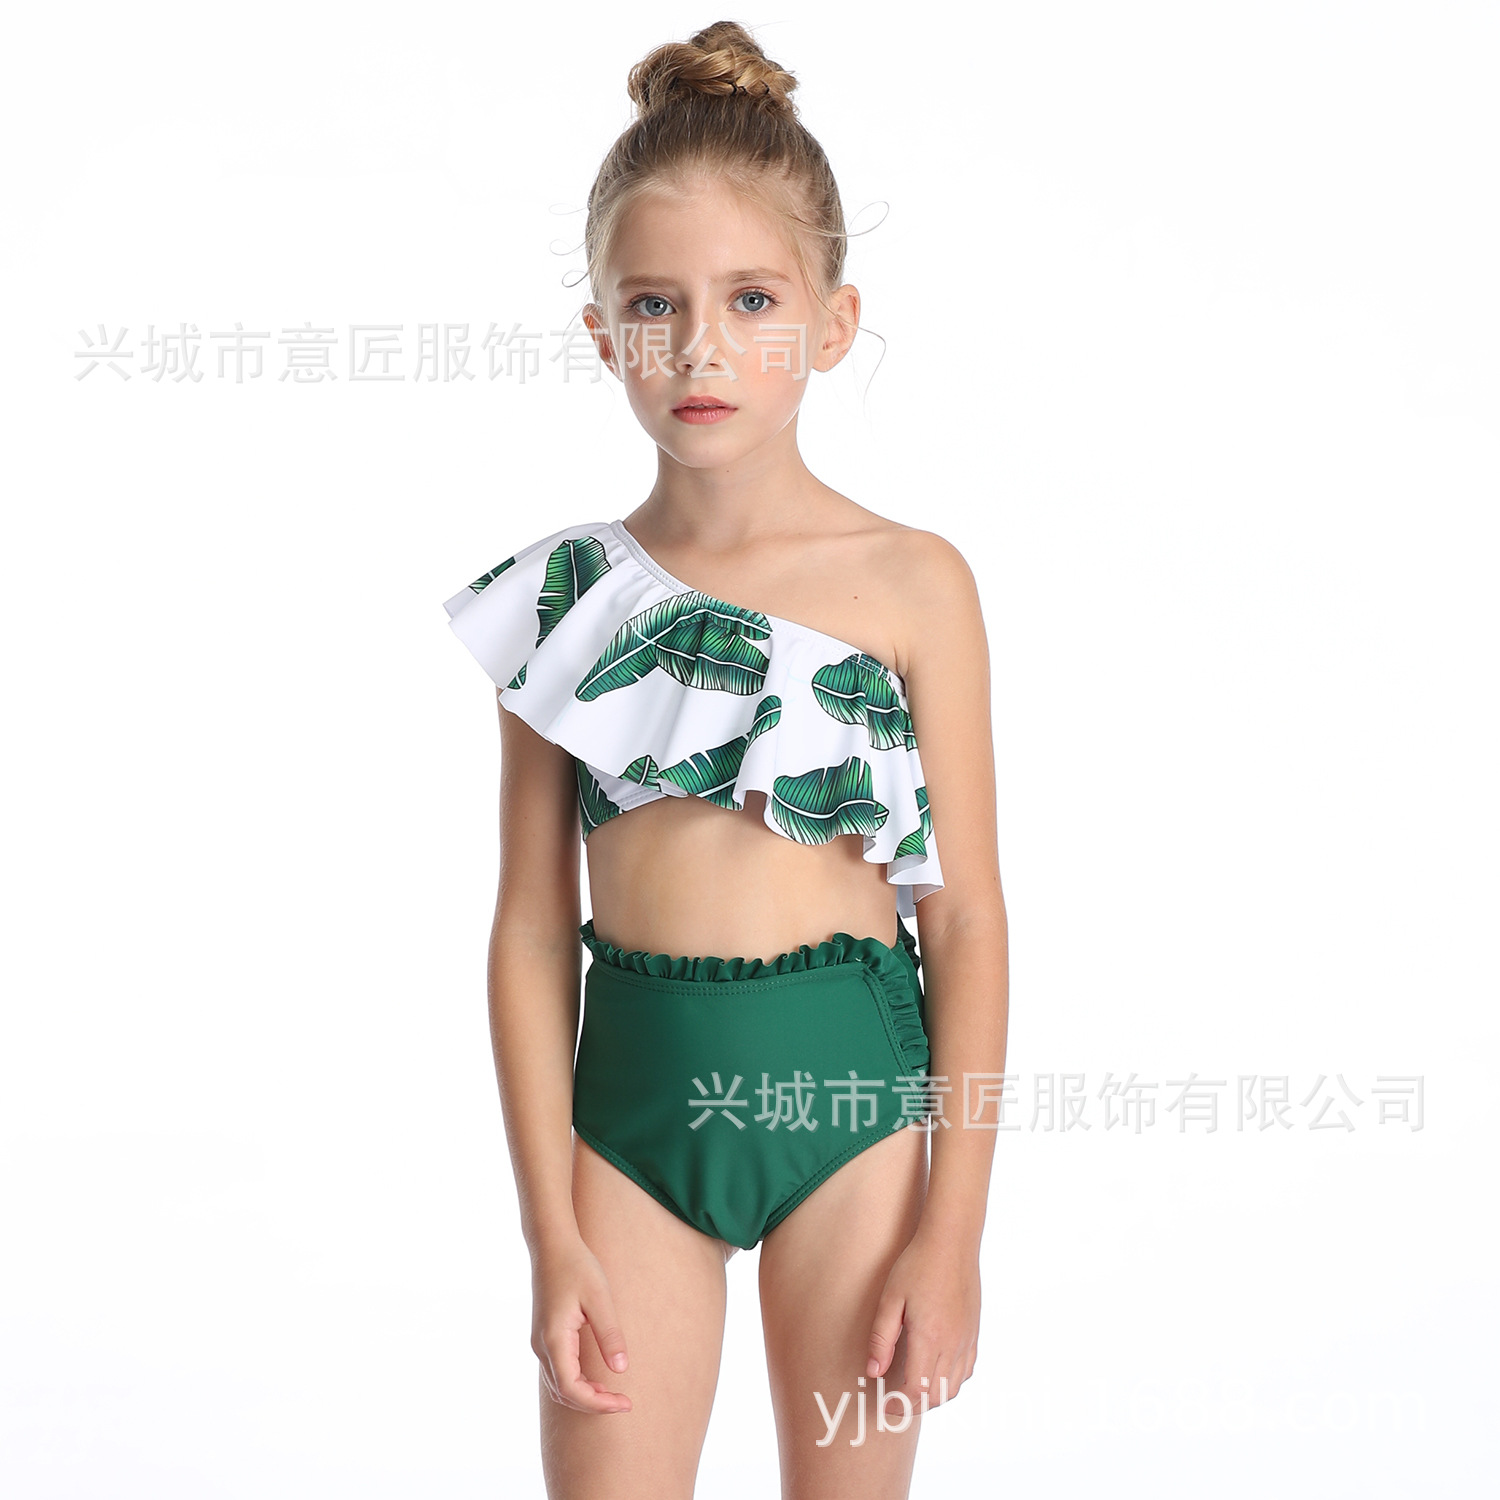 2020 New Style Europe And America Business CHILDREN'S Swimwear Split Printed Single Room High-waisted Bikini Flash